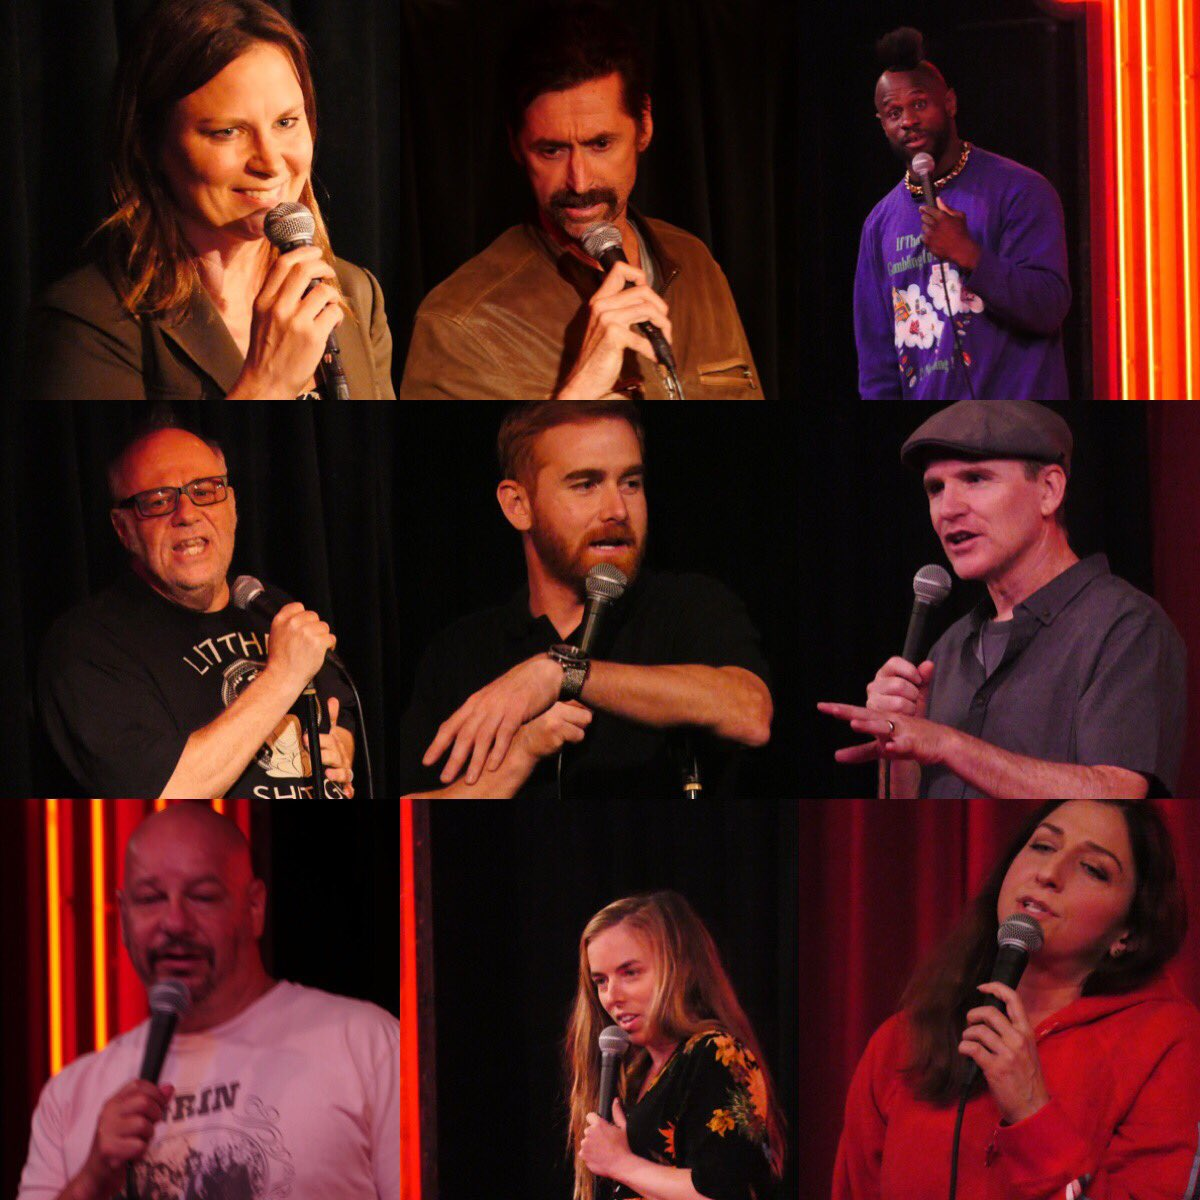 Packed houses, stacked lineups, thank you to everyone who came out tonight! #thecomedystore